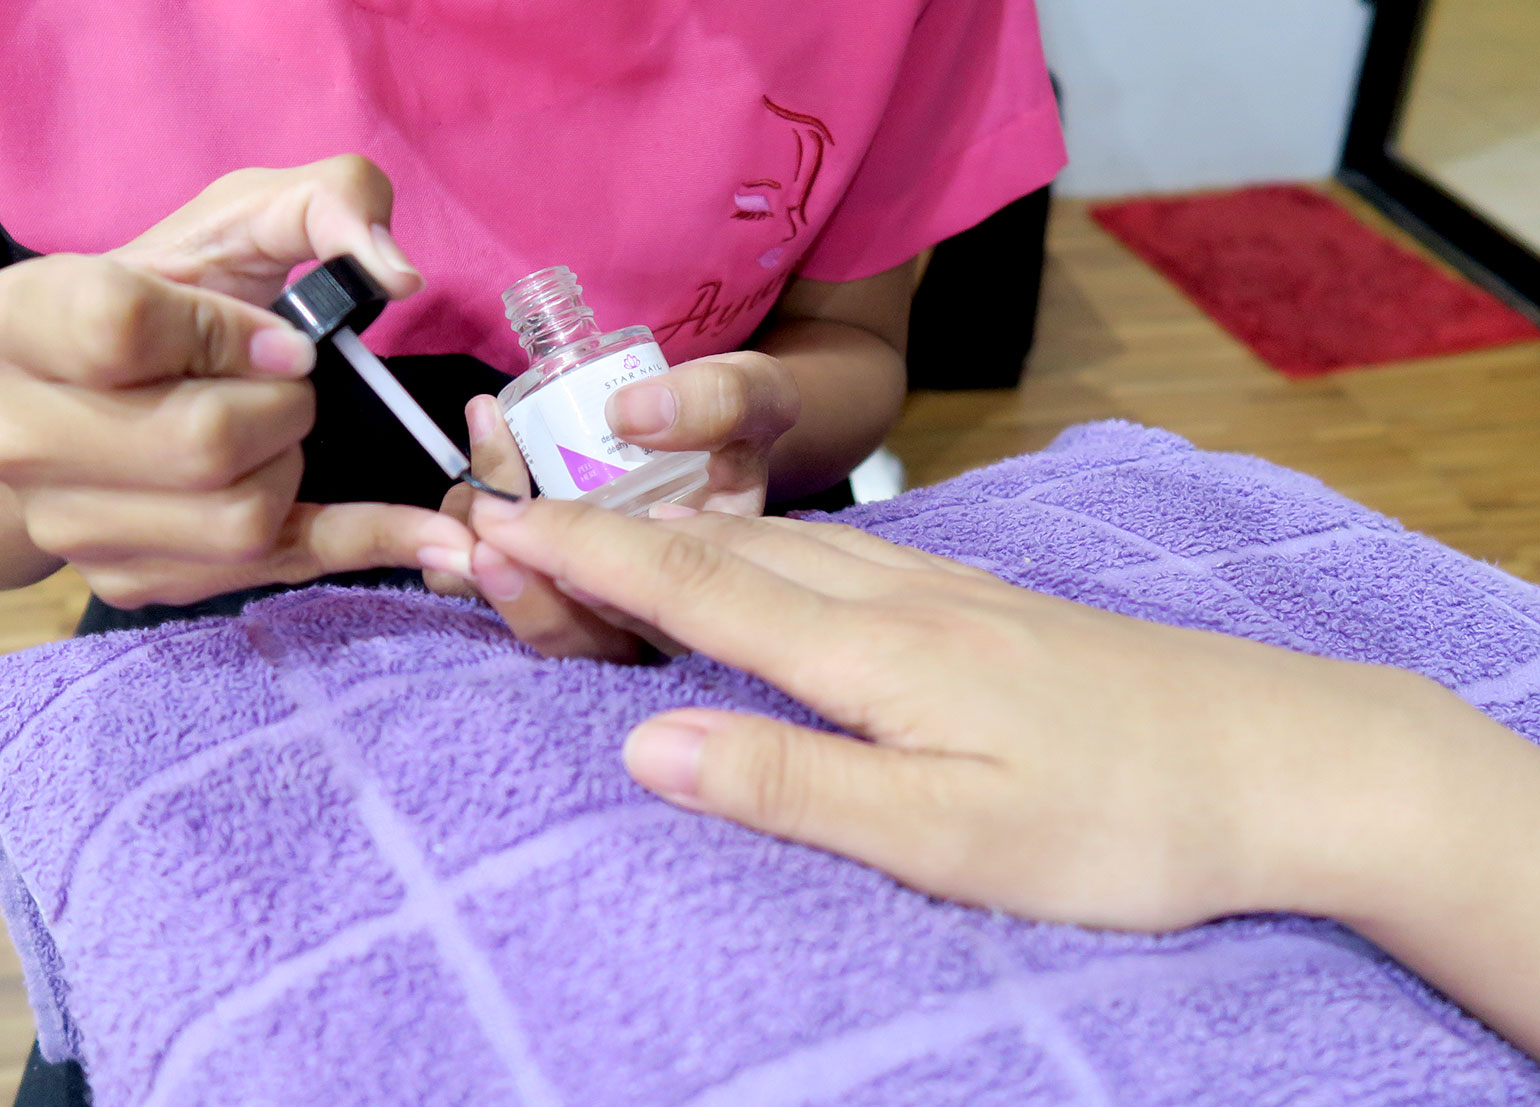 2 Acrylic Nails Review - Nail Art - Ayumi Las Piñas - Gen-zel.com(c)